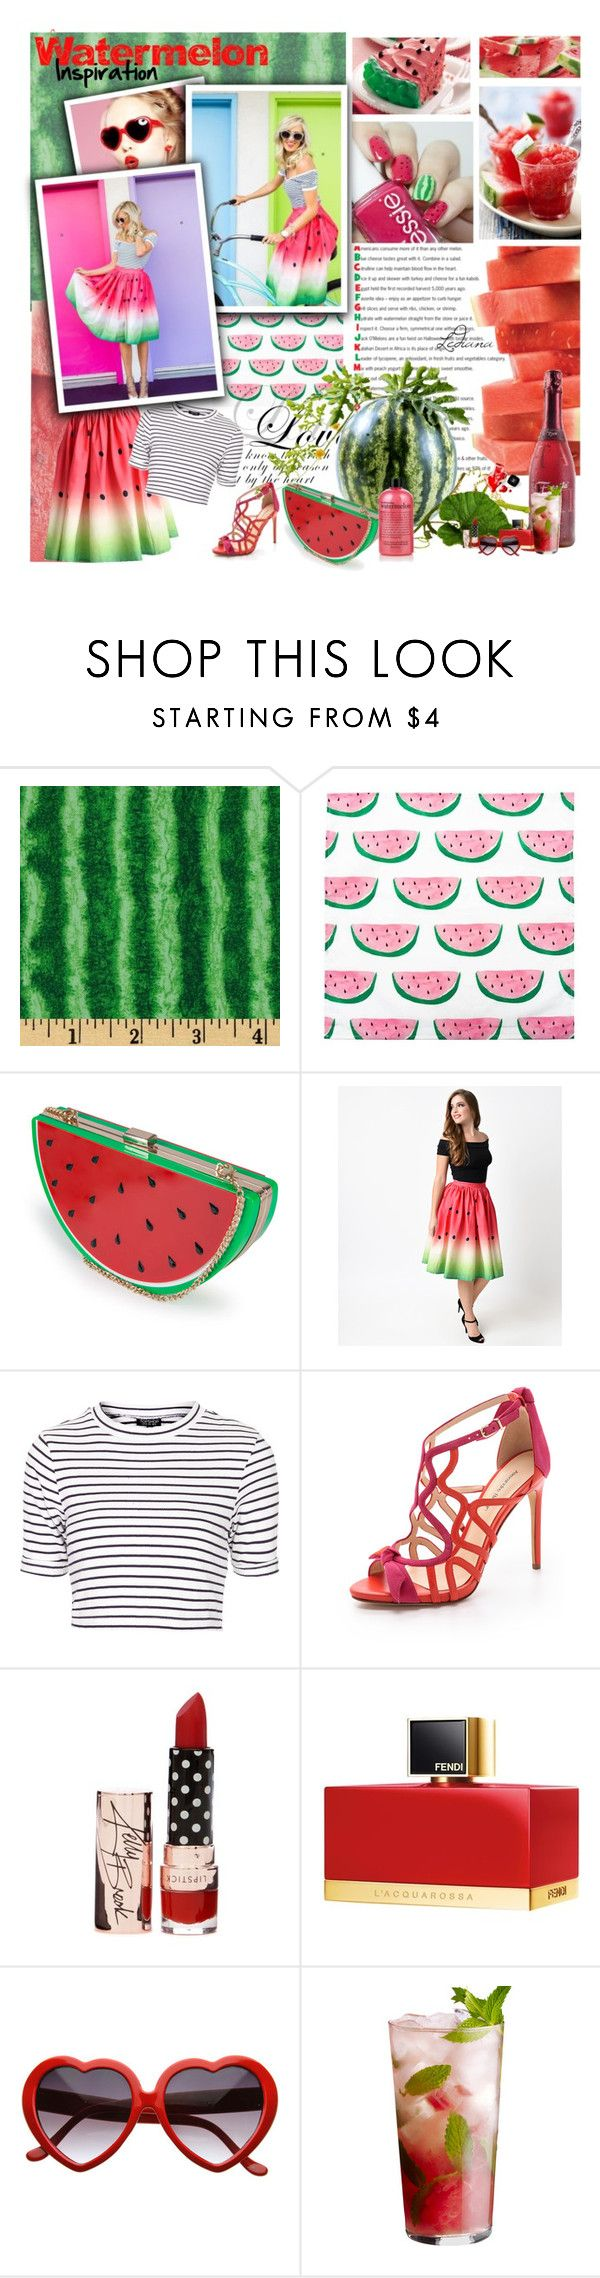 """Watermelon inspiration"" by ledianaaaaa ❤ liked on Polyvore featuring Disney, Nila Anthony, Unique Vintage, Topshop, Alexandre Birman, Fendi and Chanel"